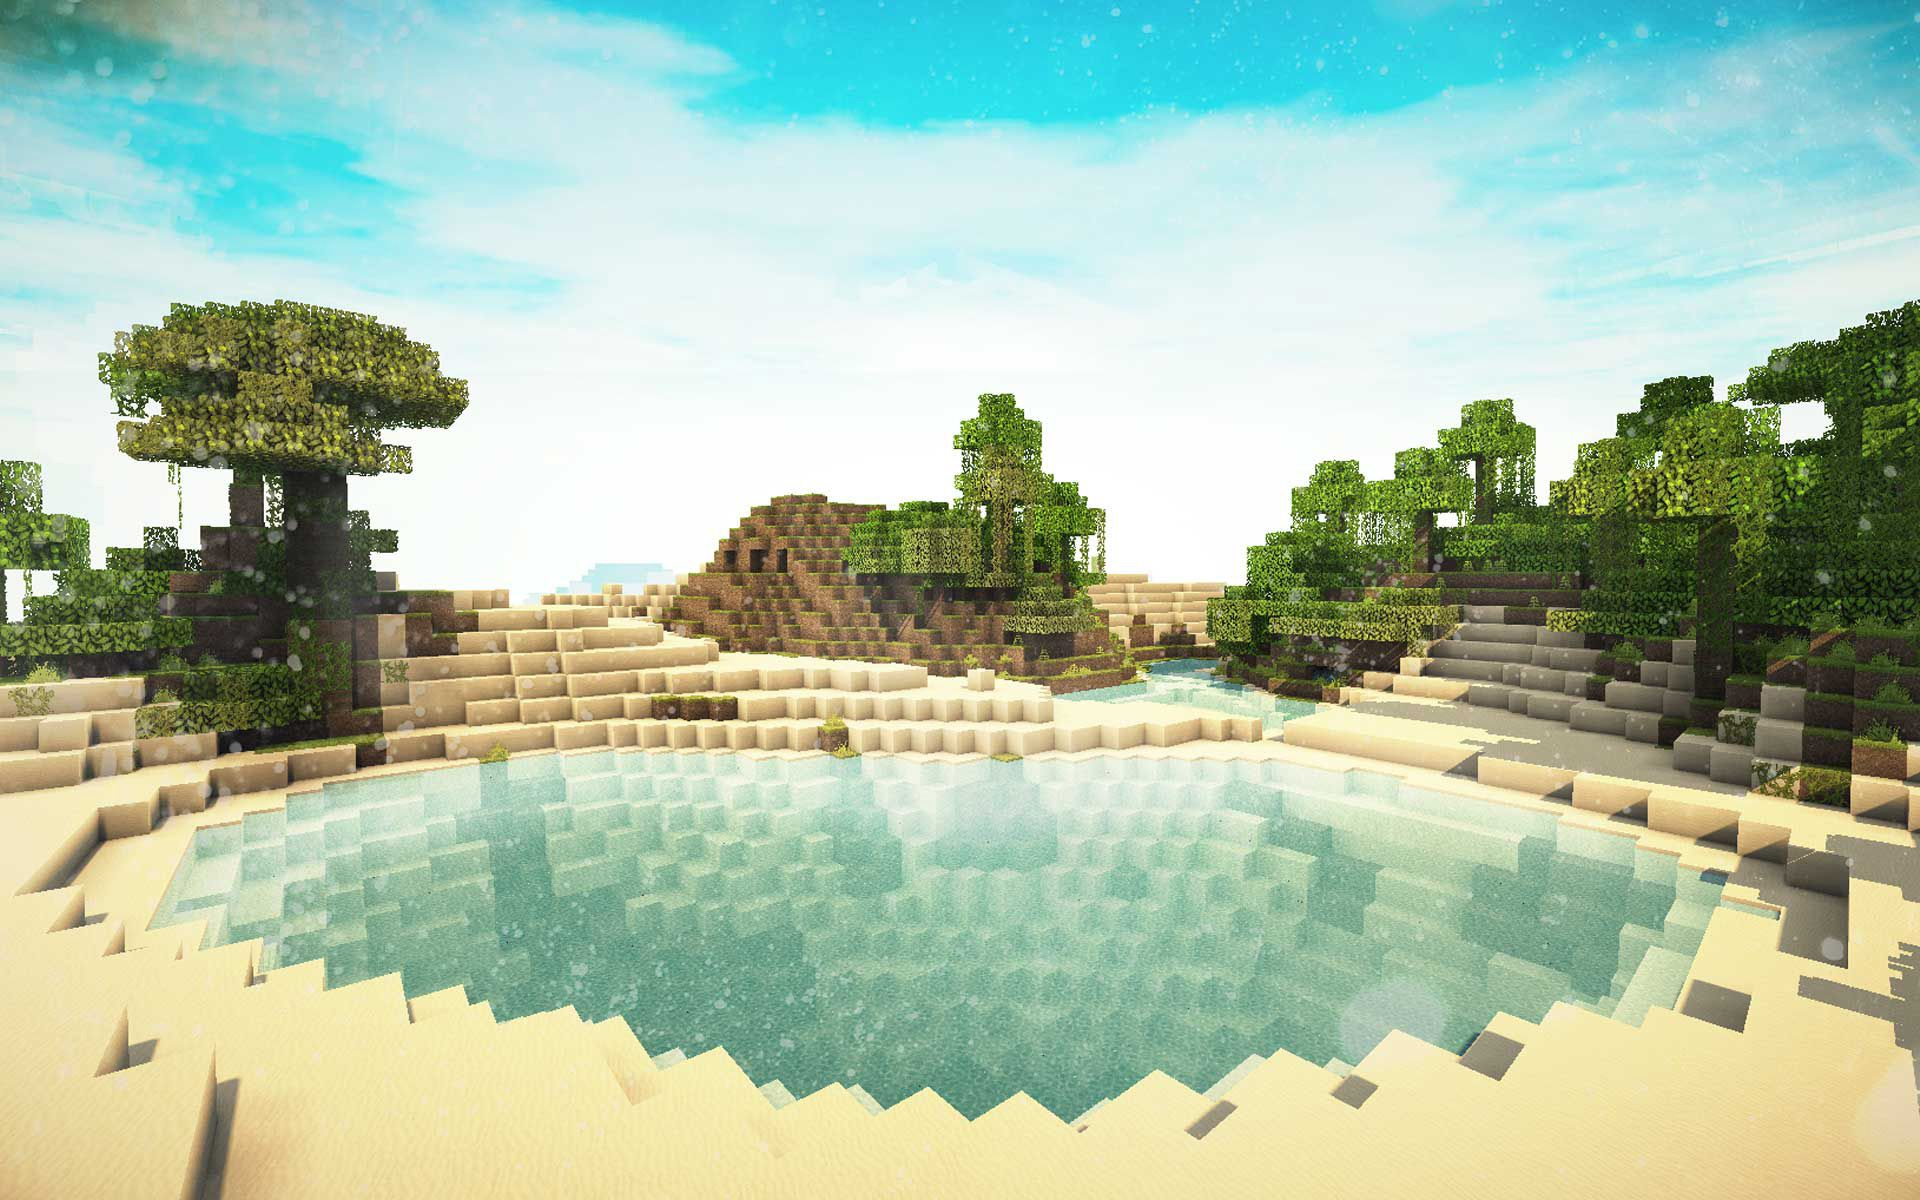 Minecraft With Shaders Hd Desktop Wallpaper High Definition 1440 837 Minecraft Shaders Backgroun Papel De Parede Minecraft Fotos De Minecraft Chale Minecraft